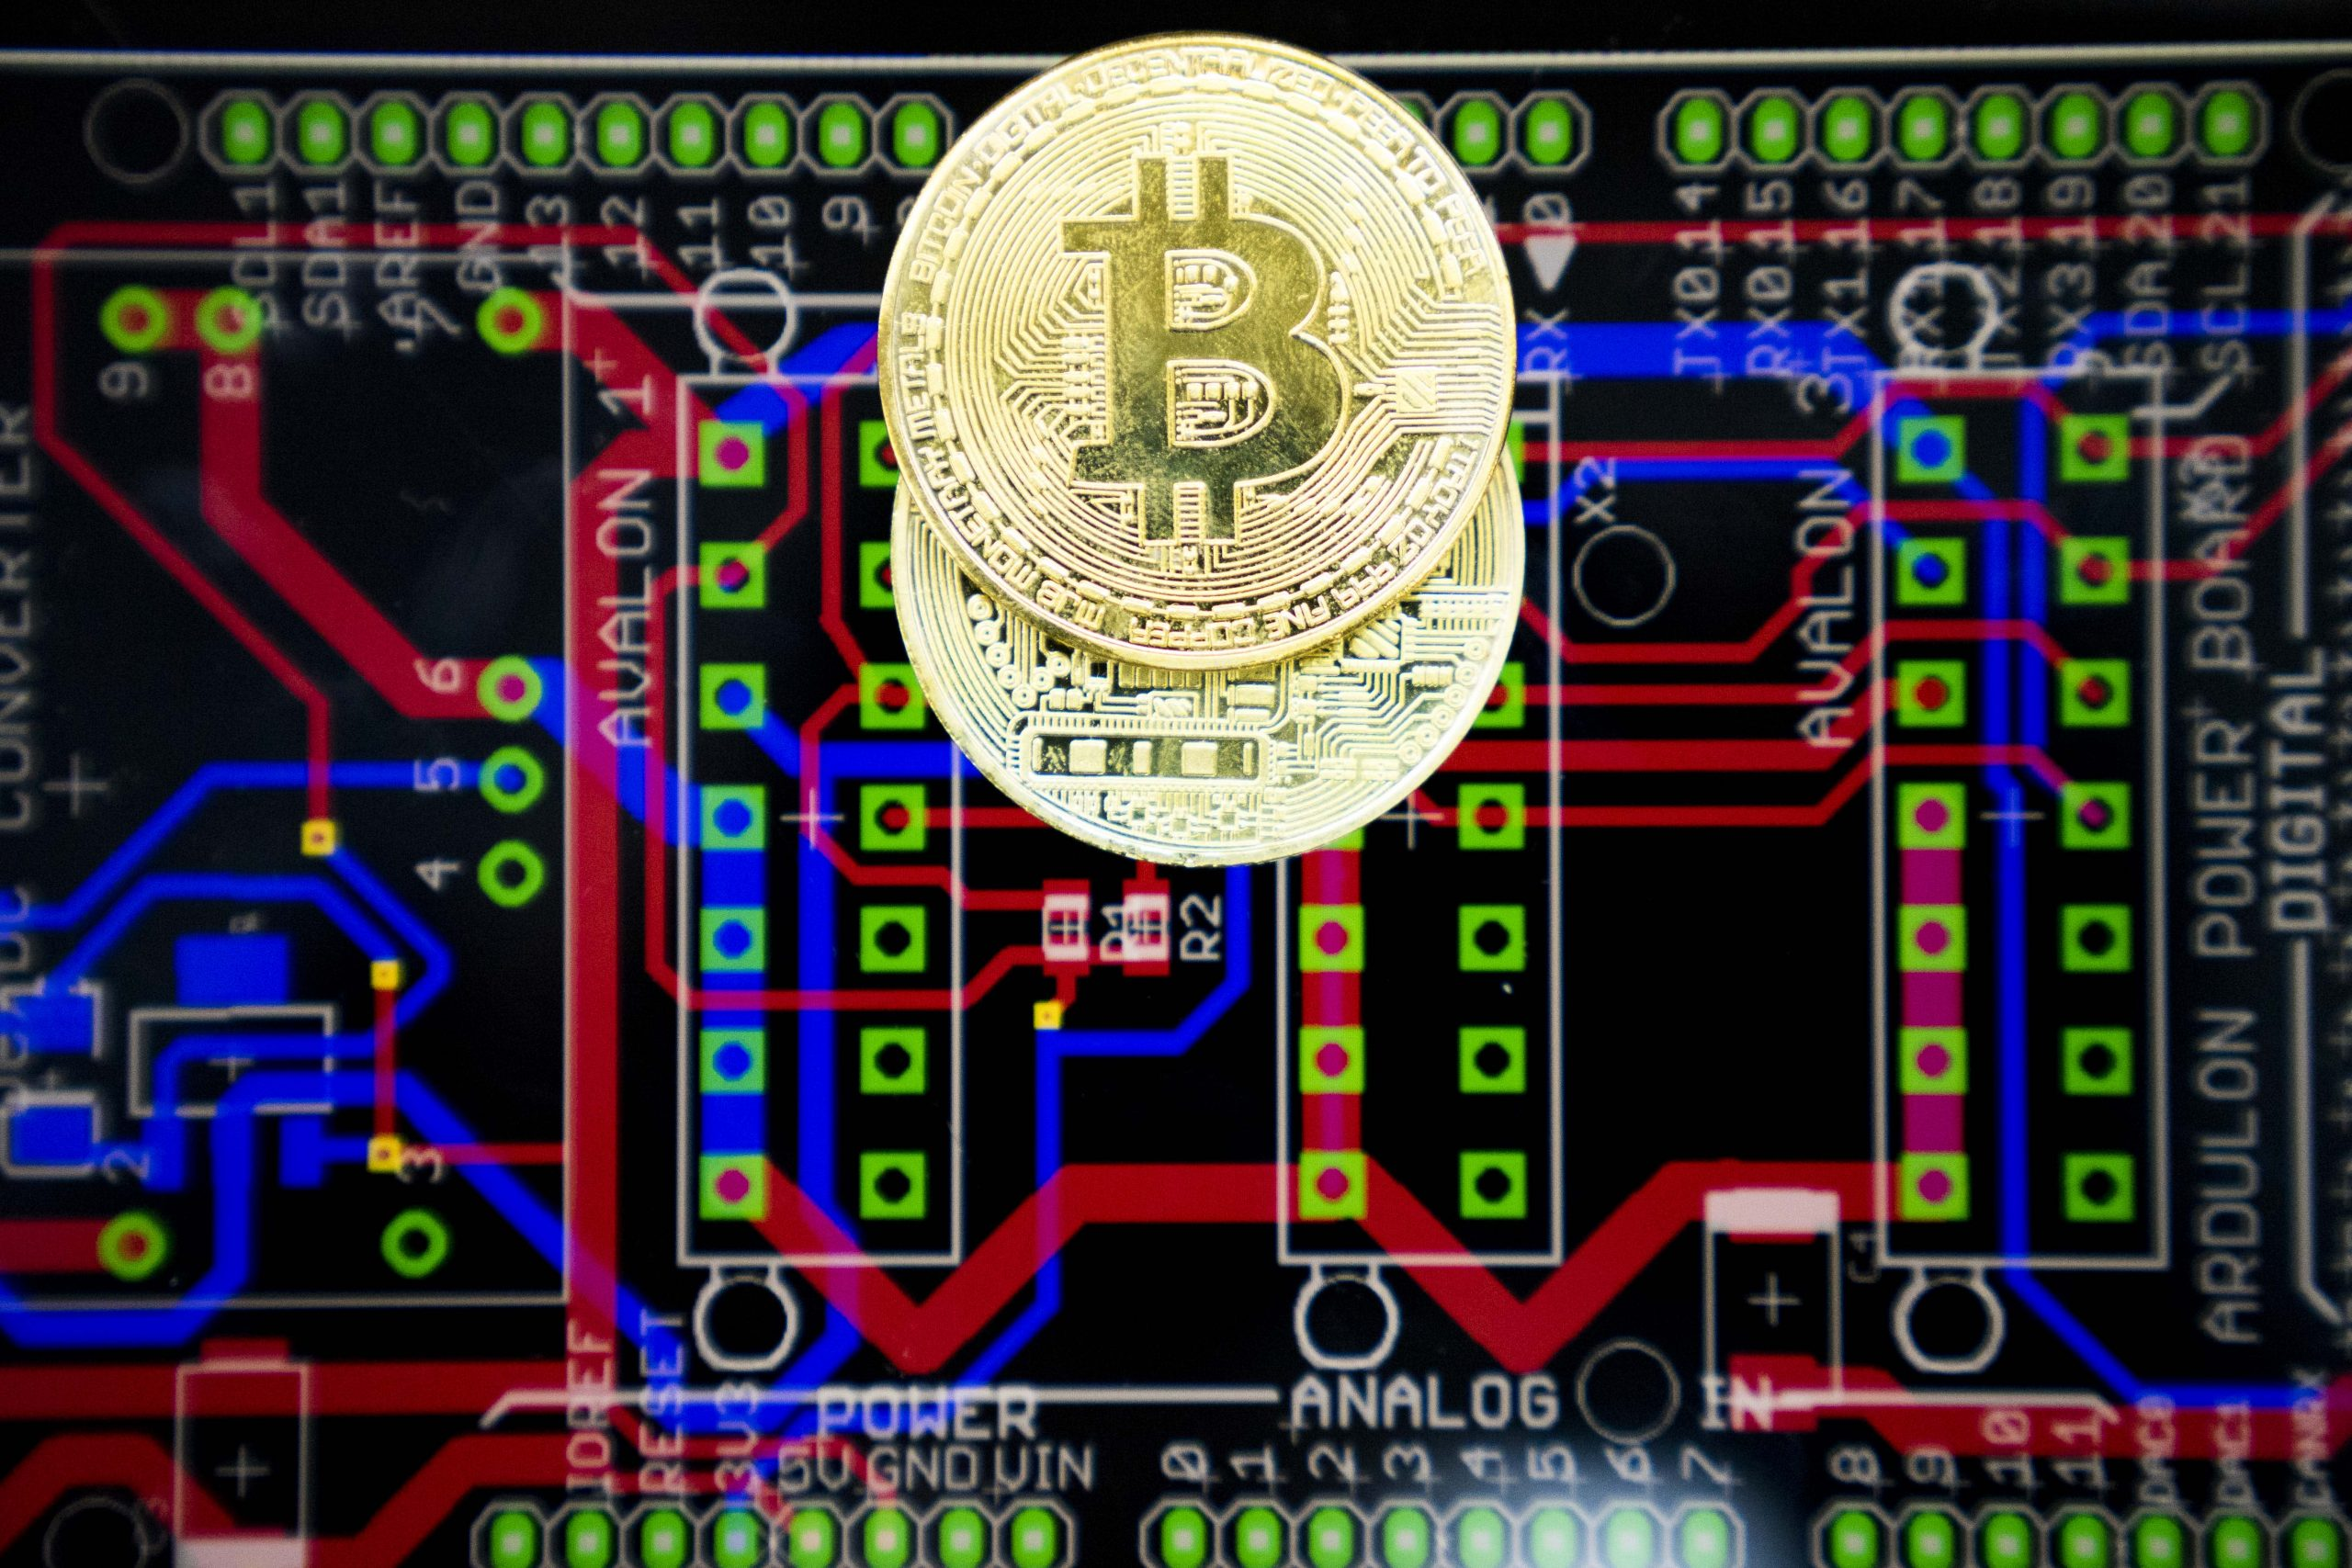 China bitcoin mining hub to shut down cryptocurrency projects